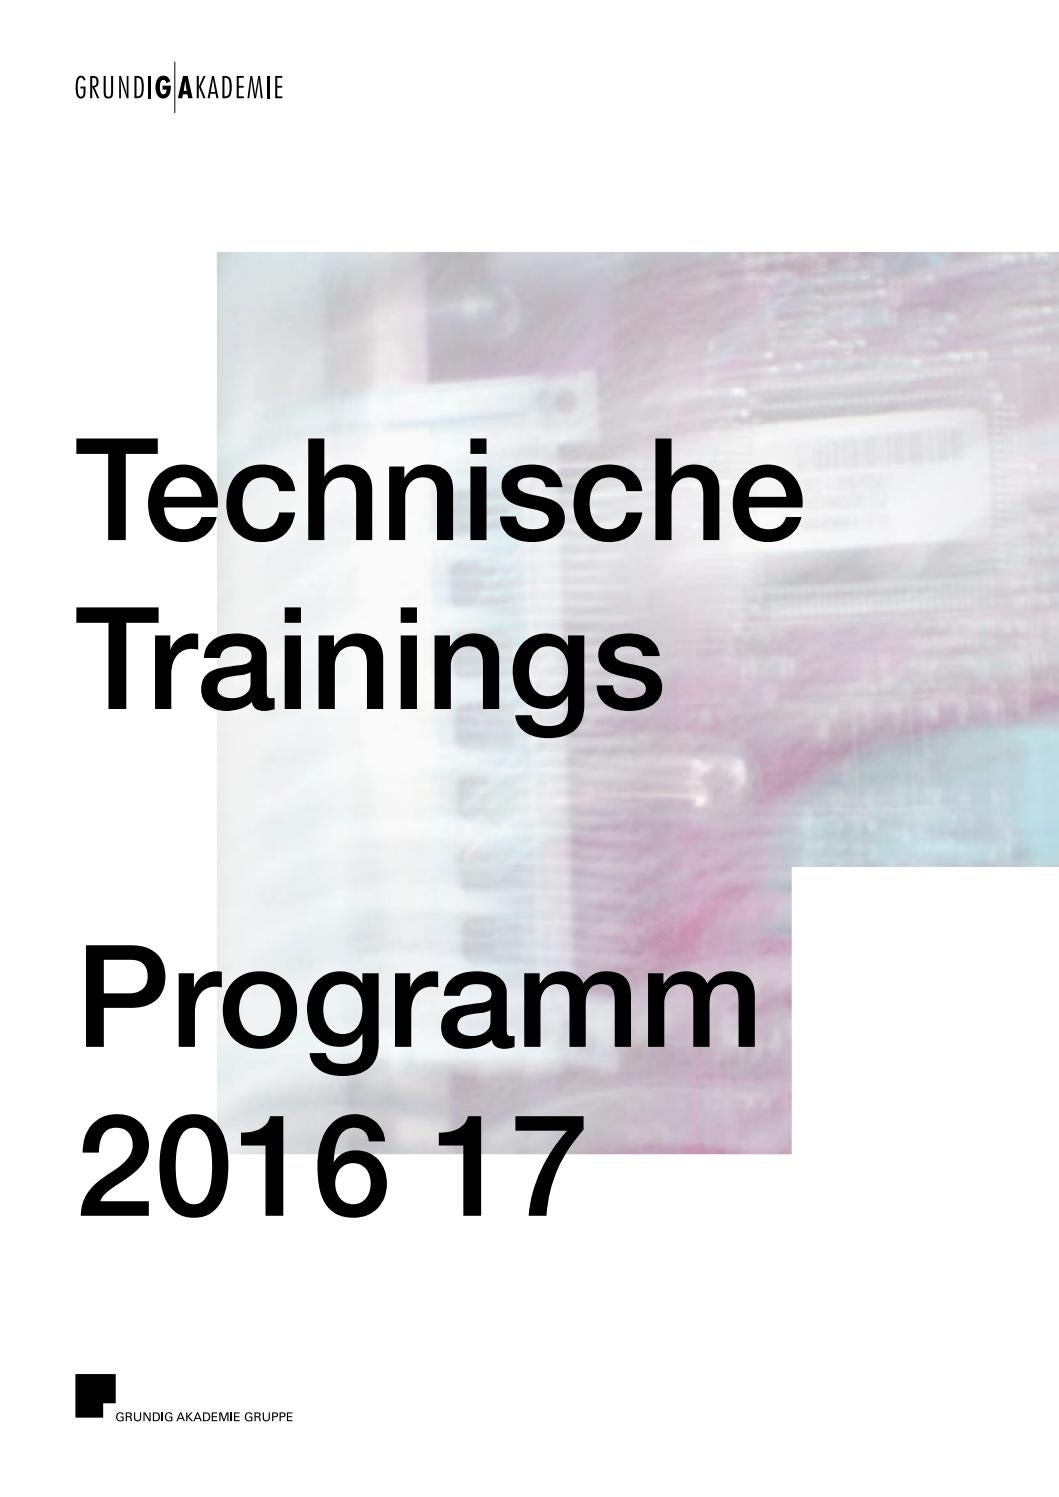 GRUNDIG AKADEMIE Technische Trainings by GRUNDIG AKADEMIE - issuu